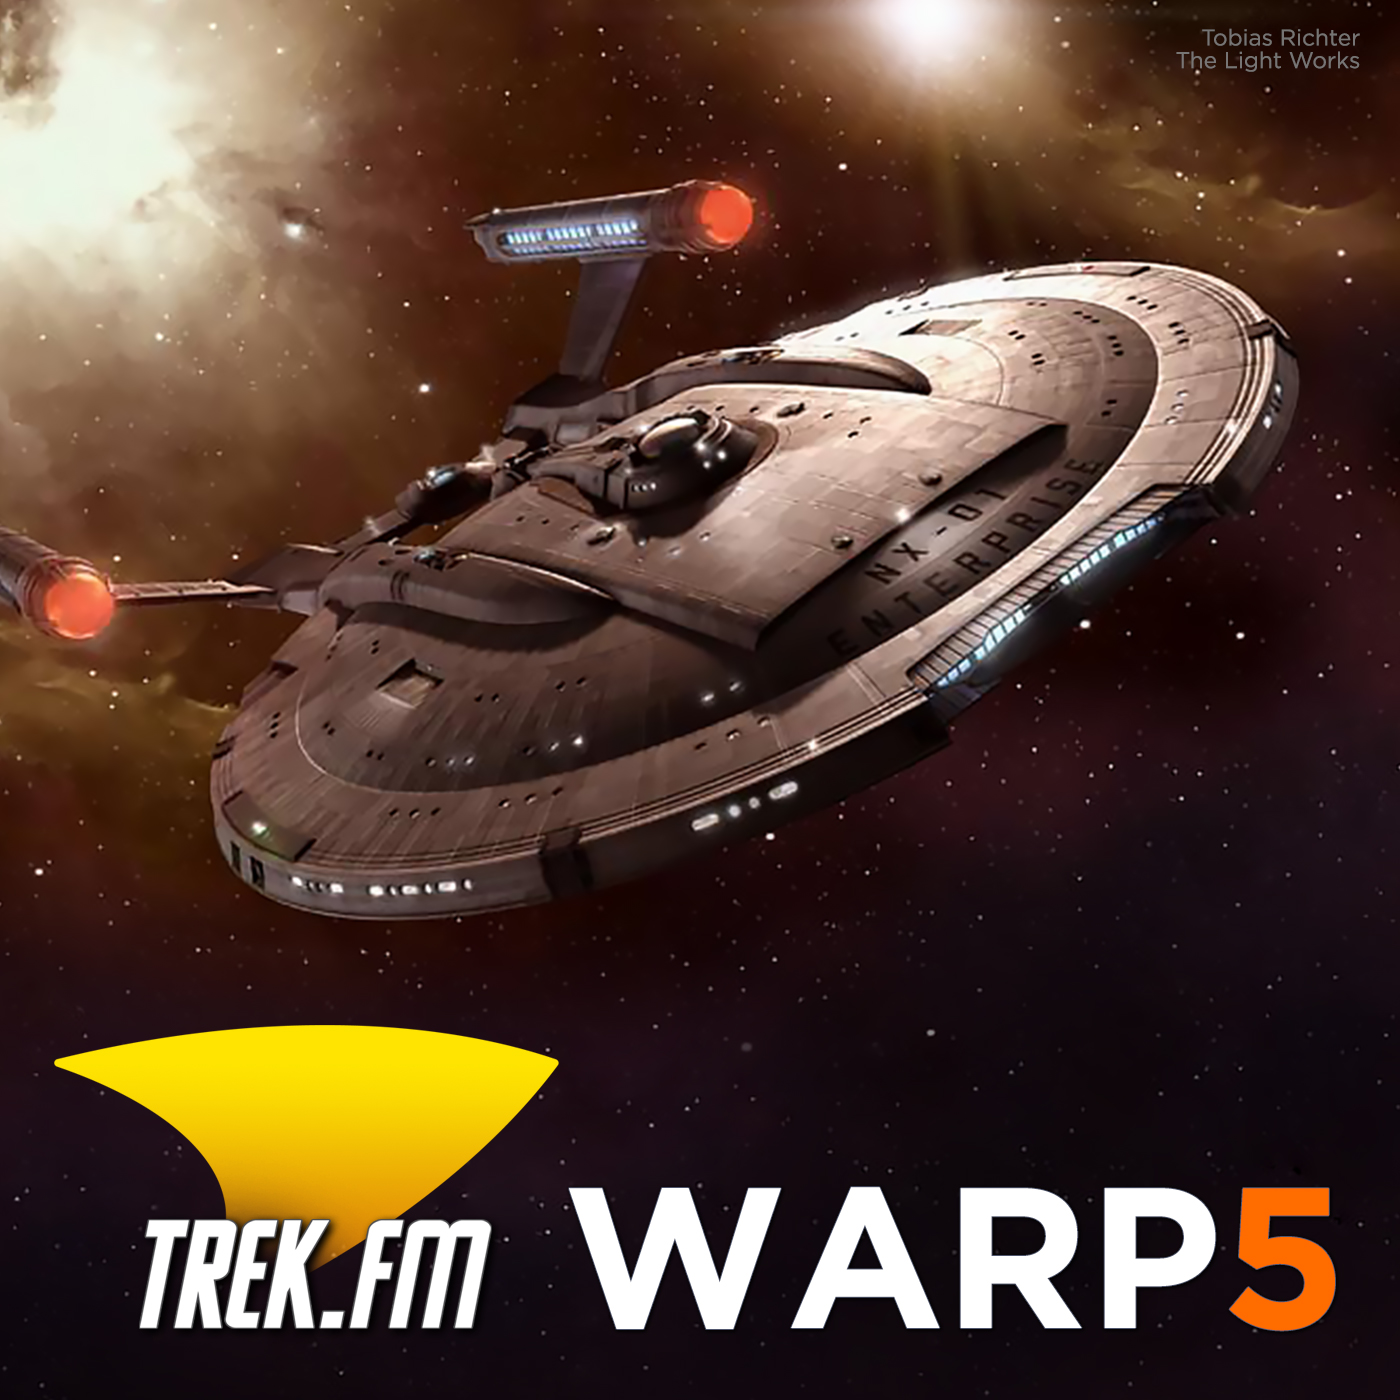 Star Trek Podcast | Warp Five - Enterprise | Trek.fm